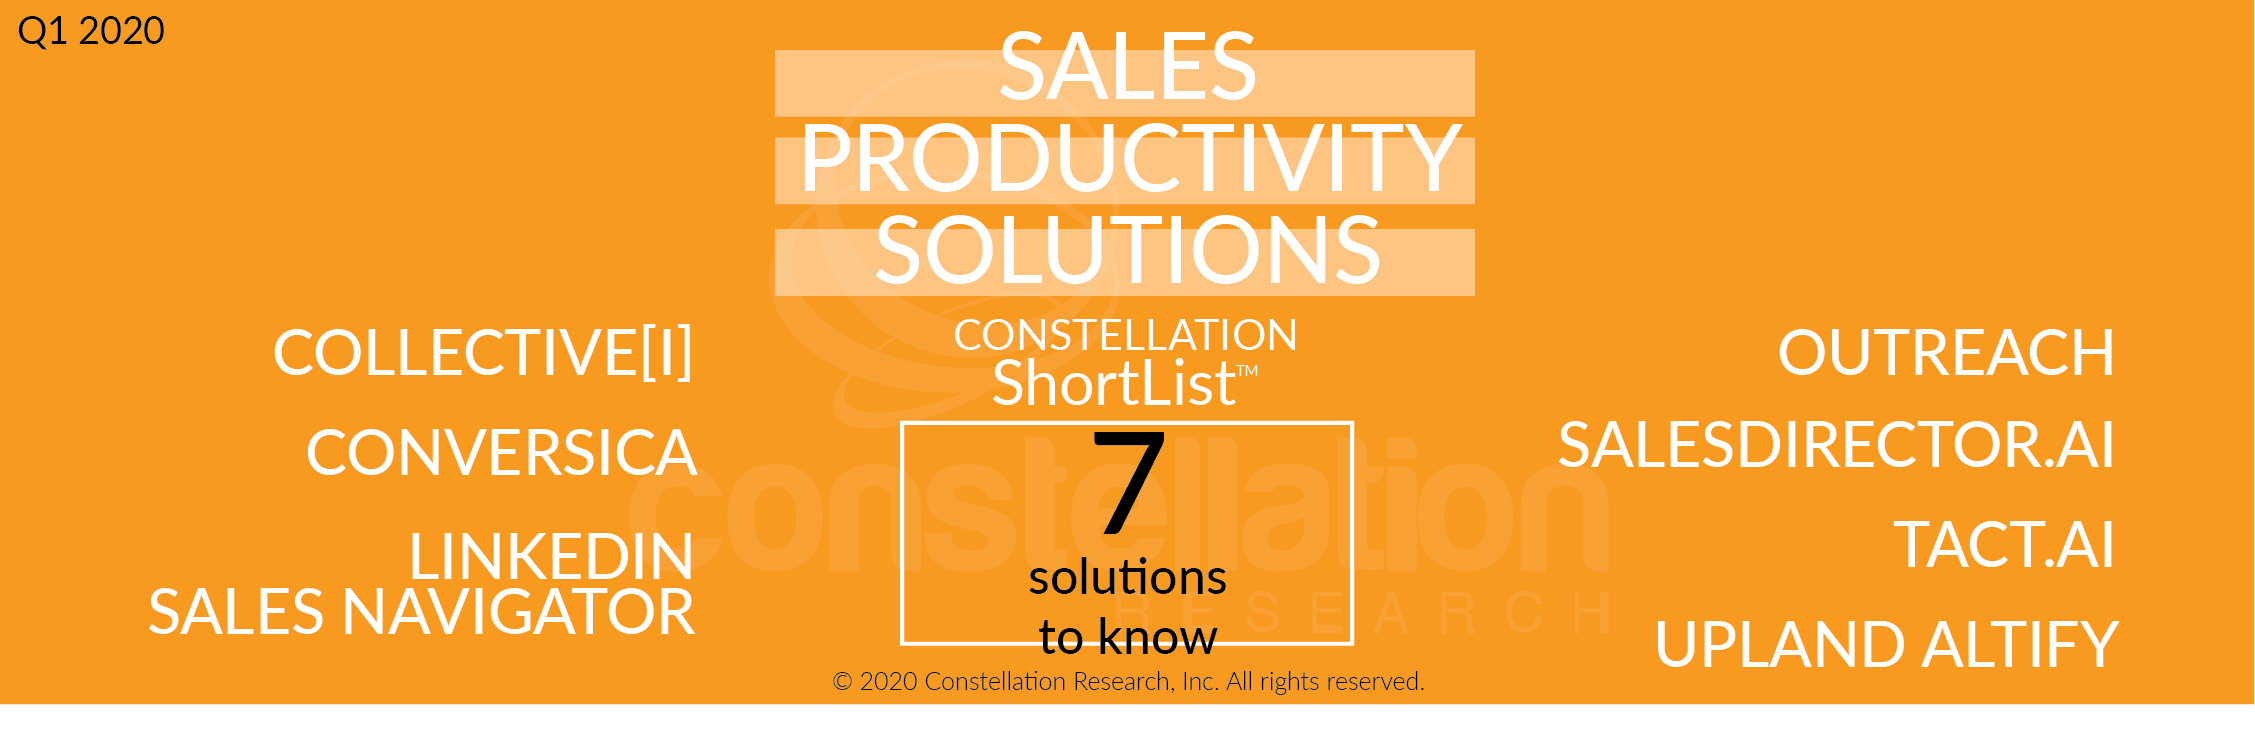 Constellation ShortList™ Sales Productivity Solutions